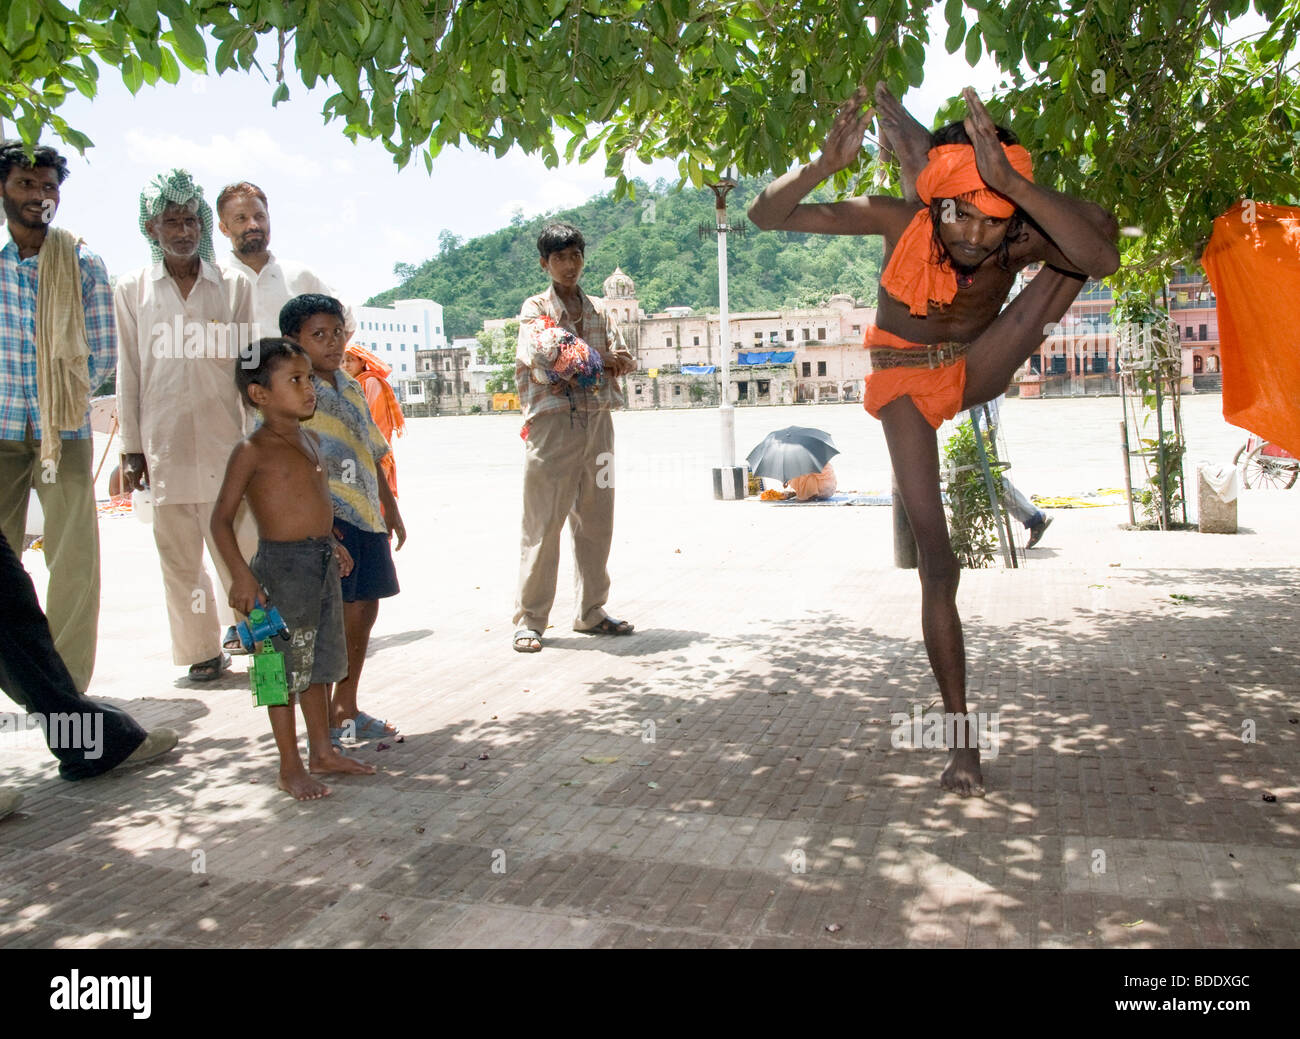 A Sadhu an ascetic or practitioner of yoga (yogi) - Stock Image